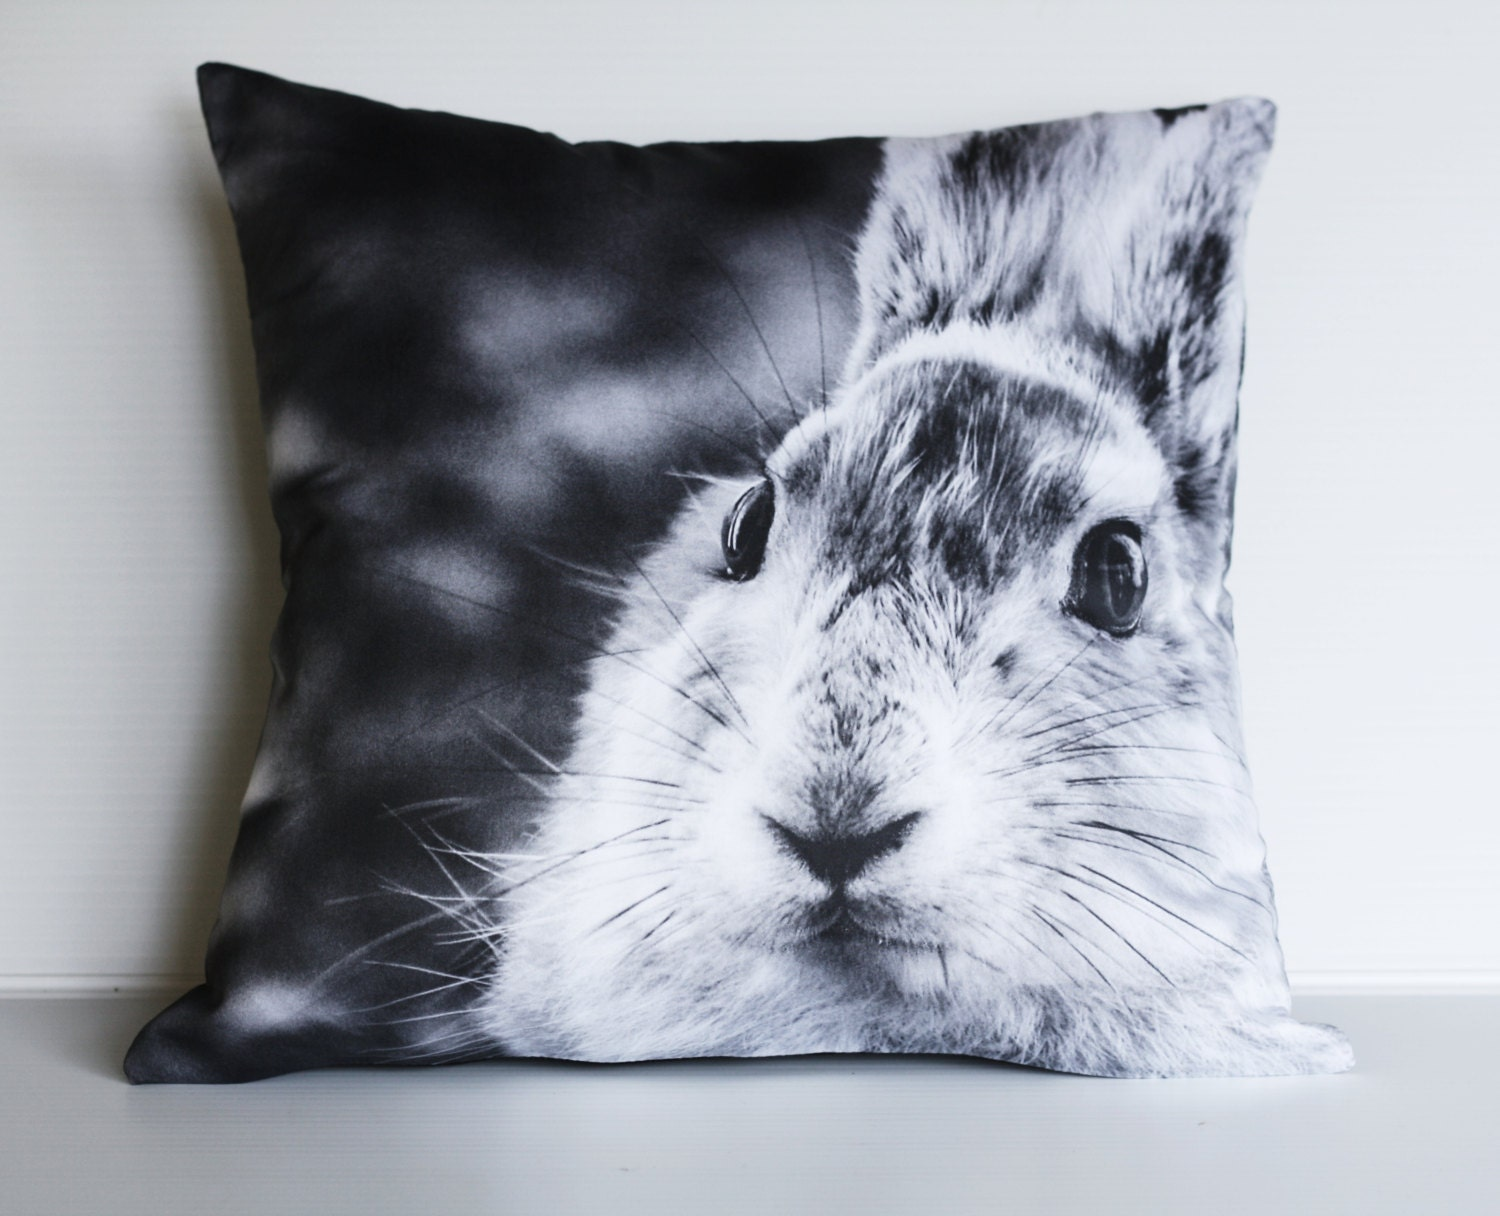 Animal Pictures On Pillows : Rabbit cushion/ animal pillow/ kids decor/ 16 cushion/